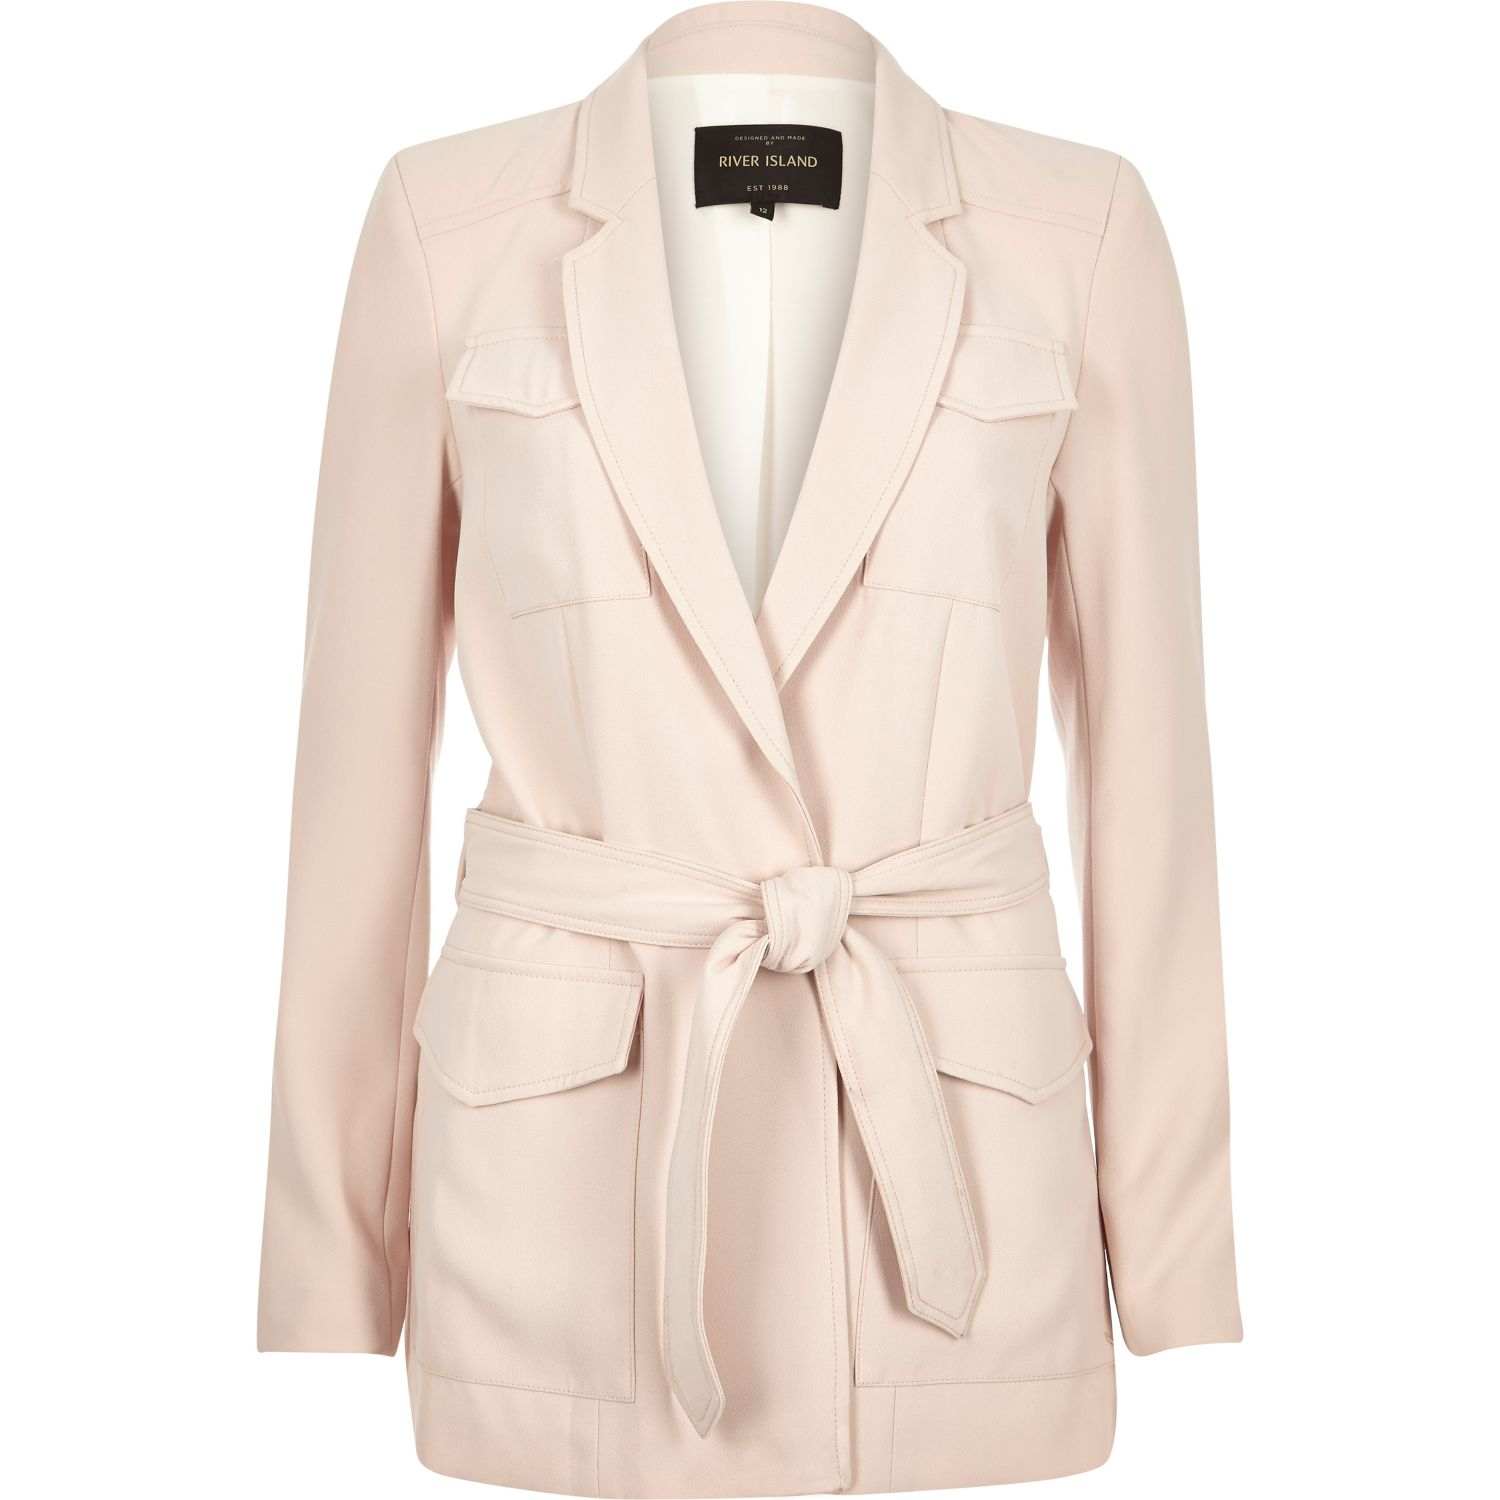 River island Light Pink Smart Belted Jacket in Pink | Lyst